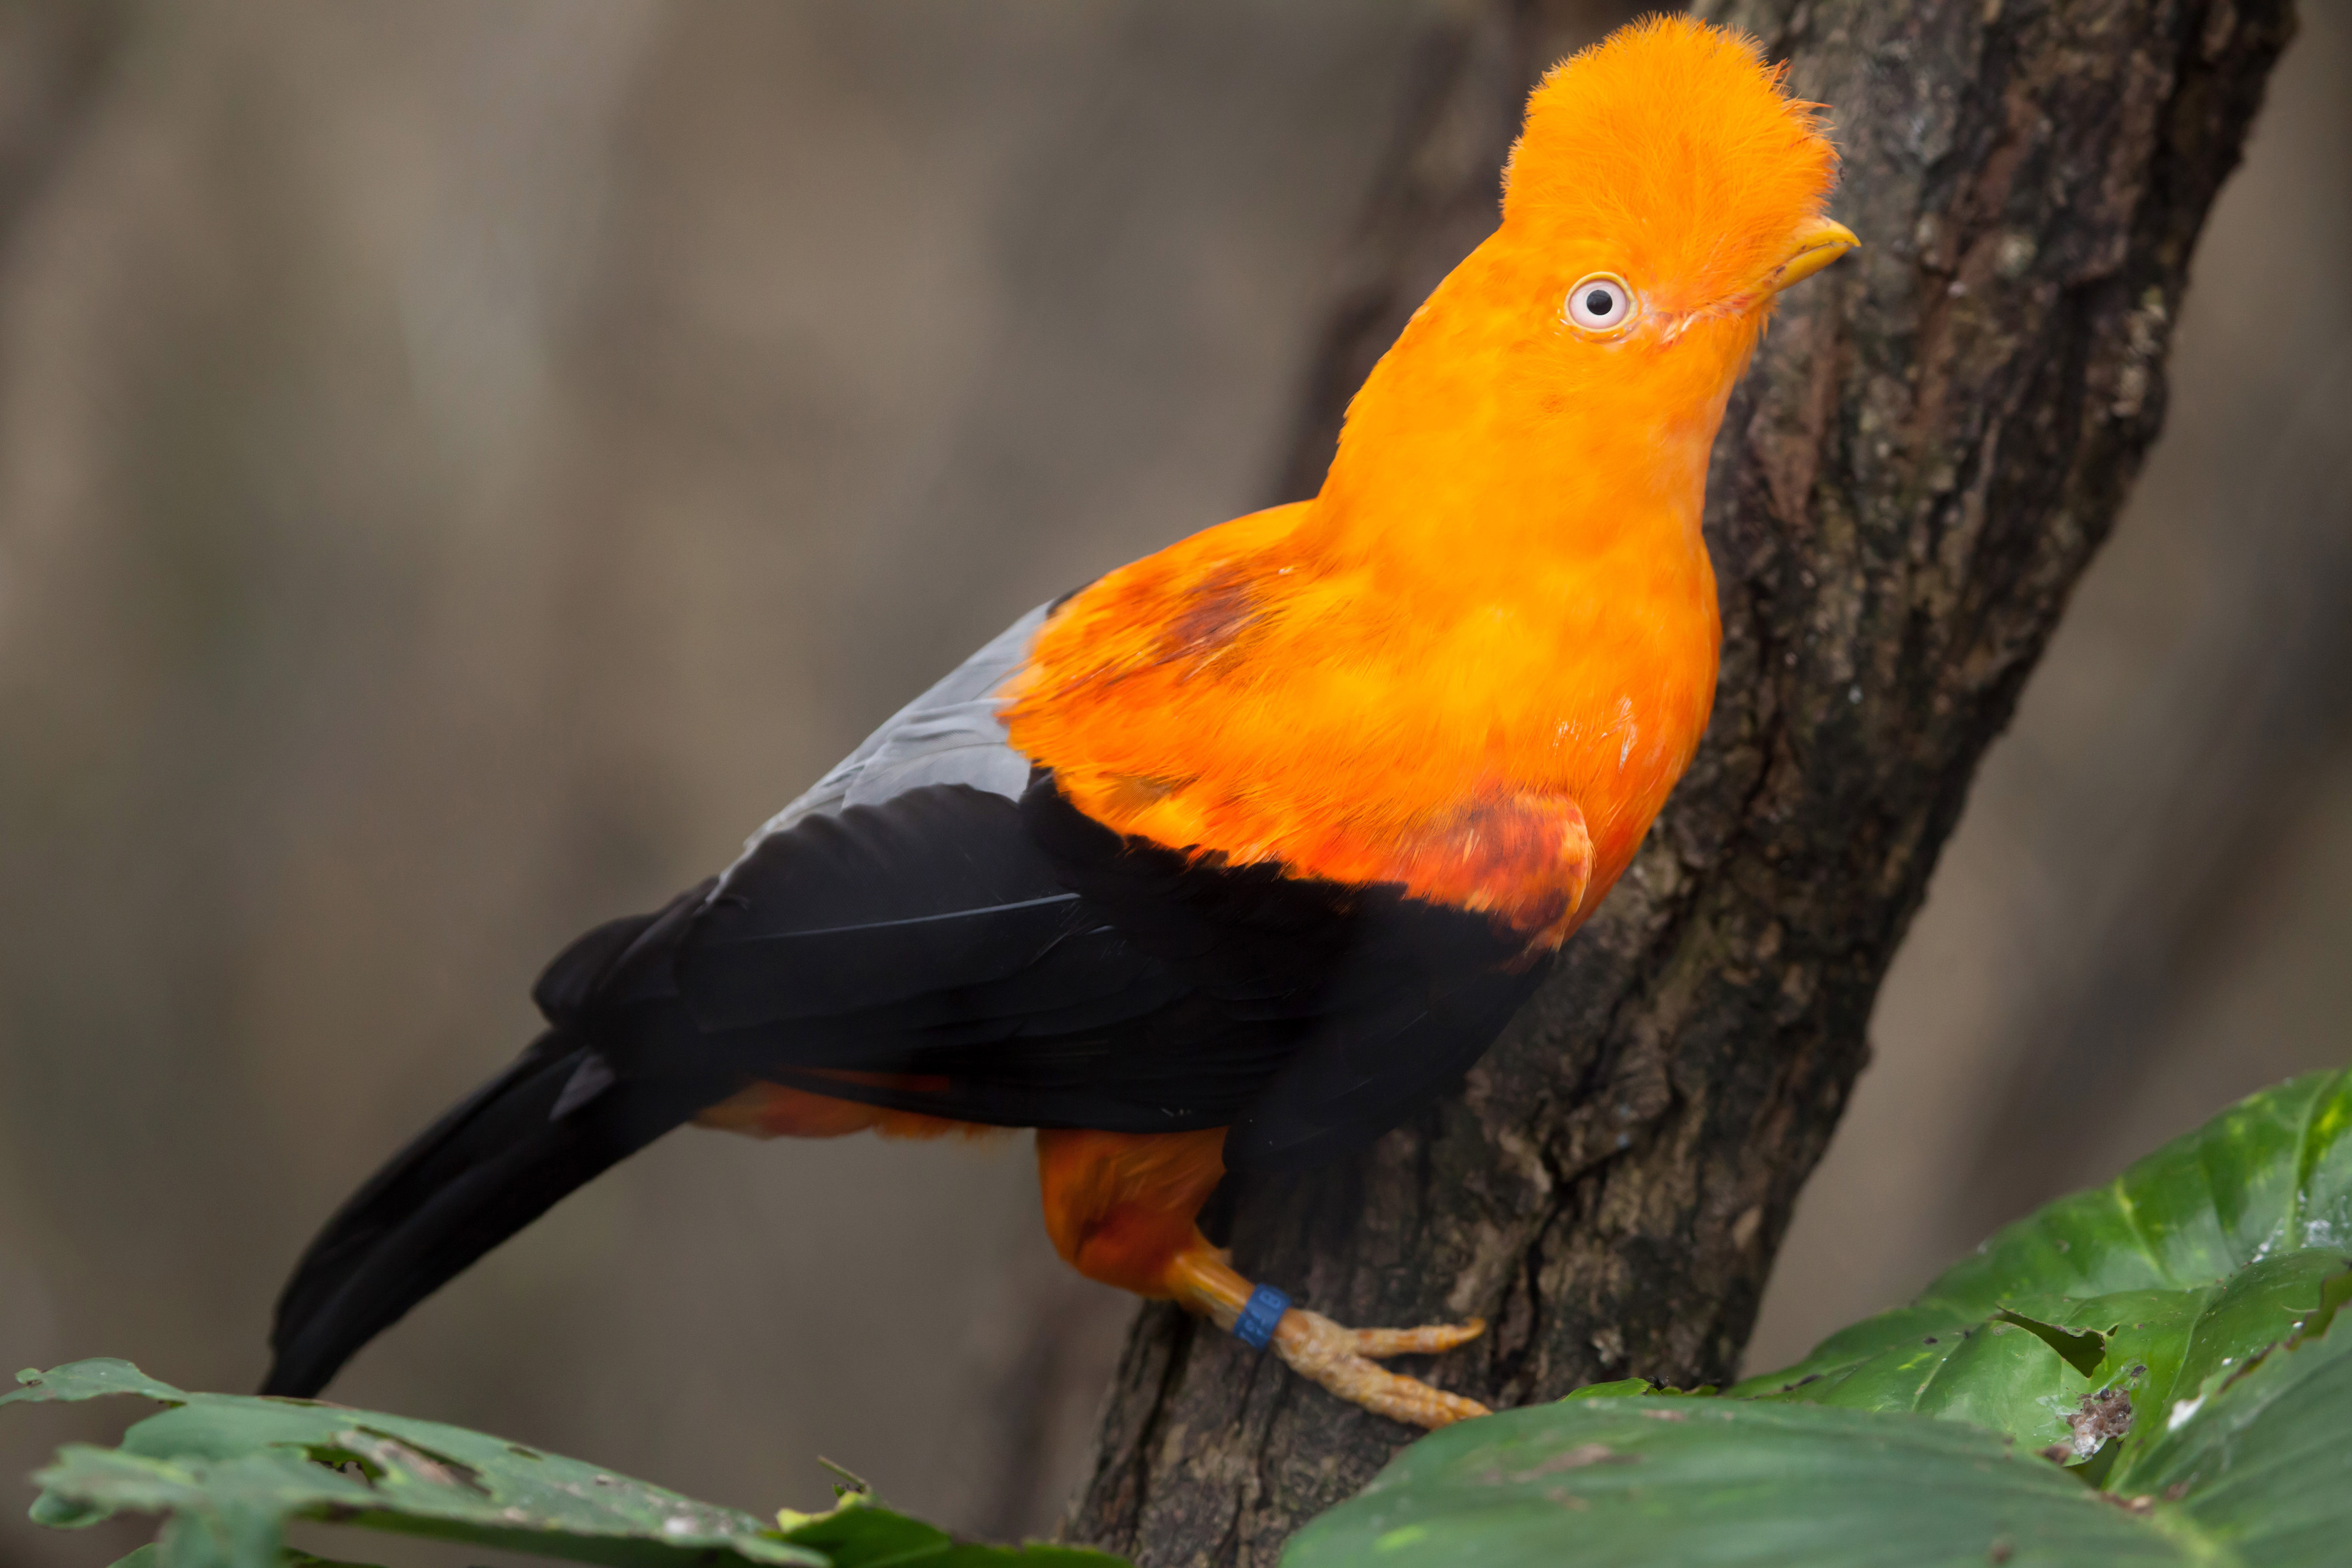 A firsthand account from Mindo, Ecuado, where human disturbance has had a huge impact on the mating habits of native birds.